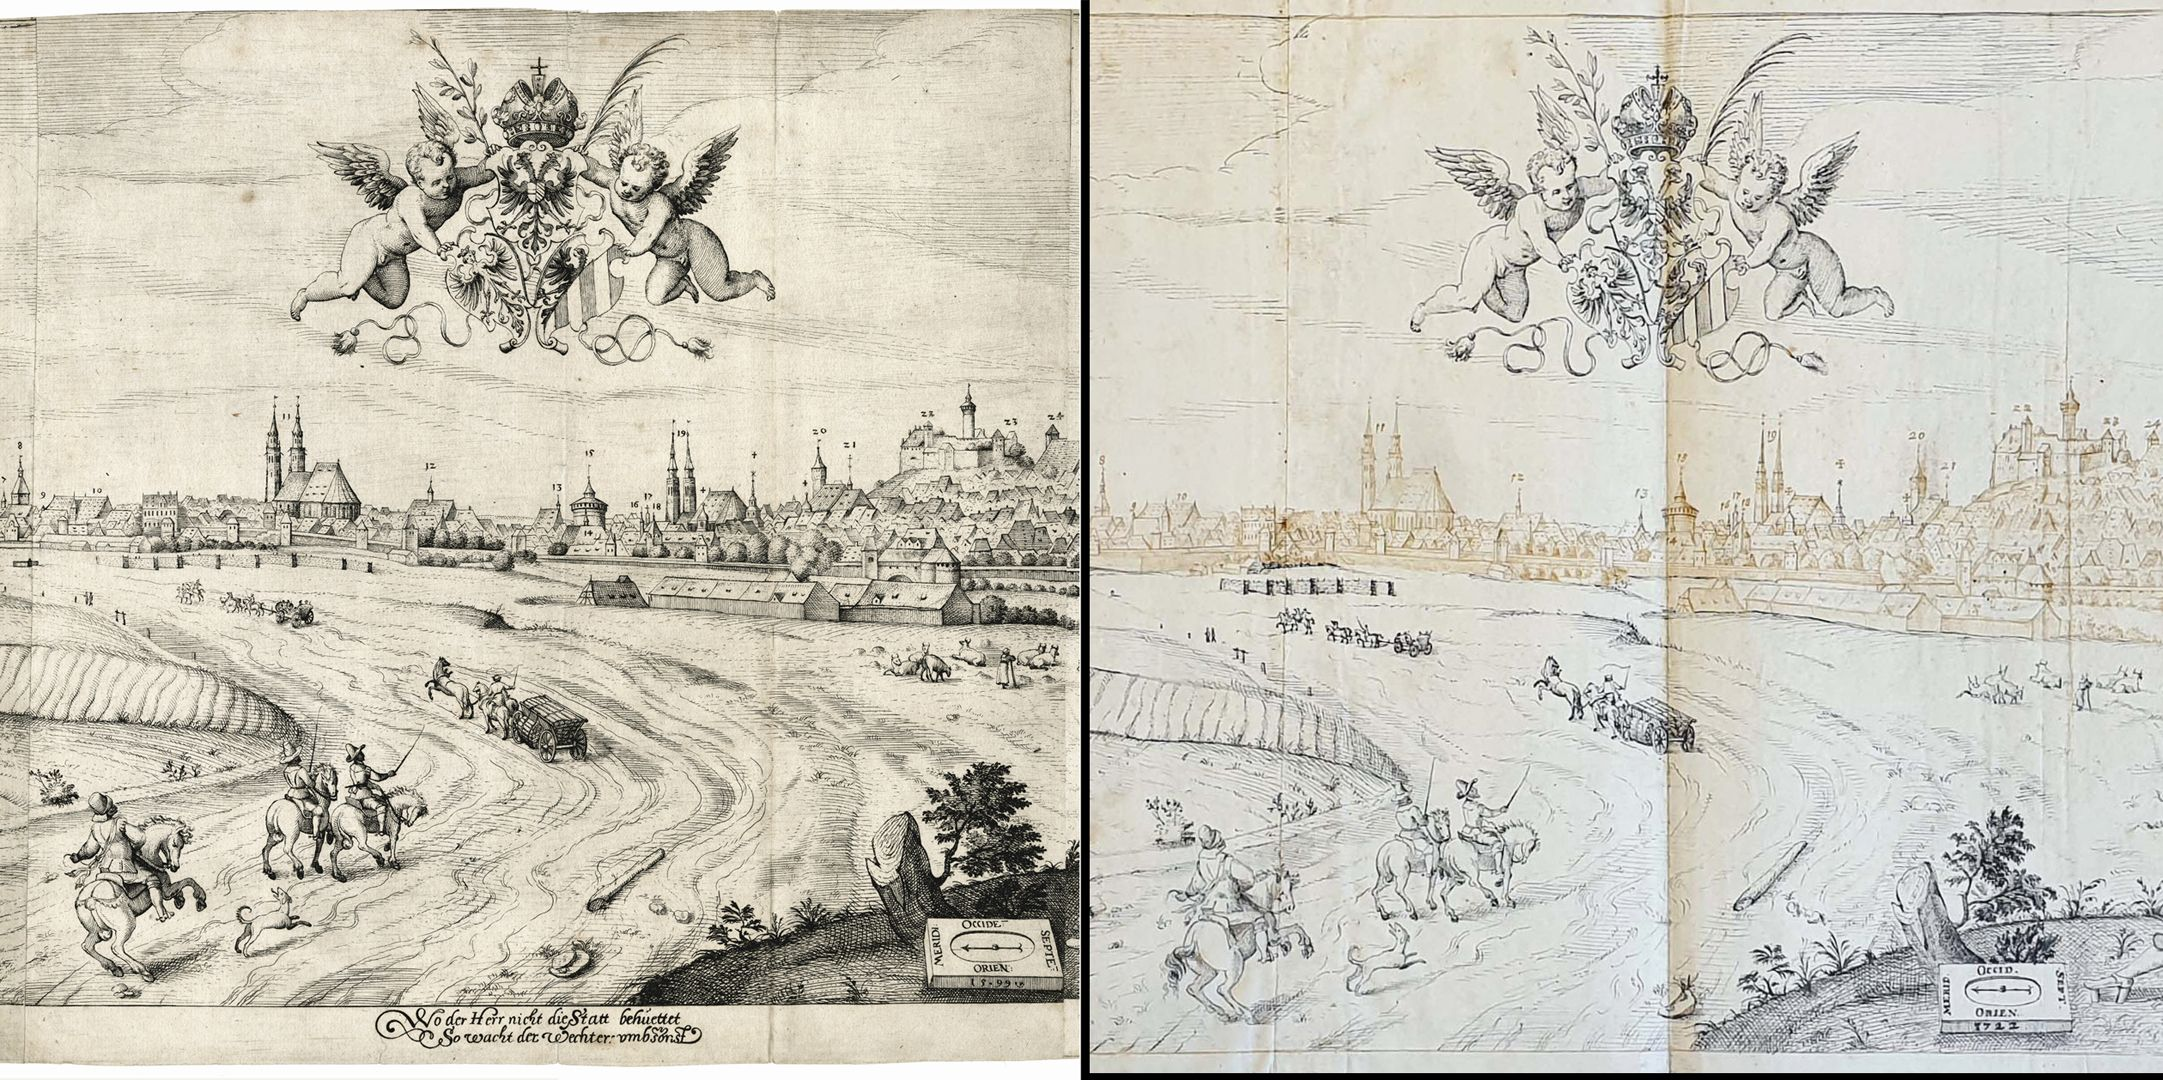 Imperial City of Nuremberg against the Rise of the Sun (east) Image comparison: left copperplate engraving by Wechter, right pen and ink drawing by Kaulitz